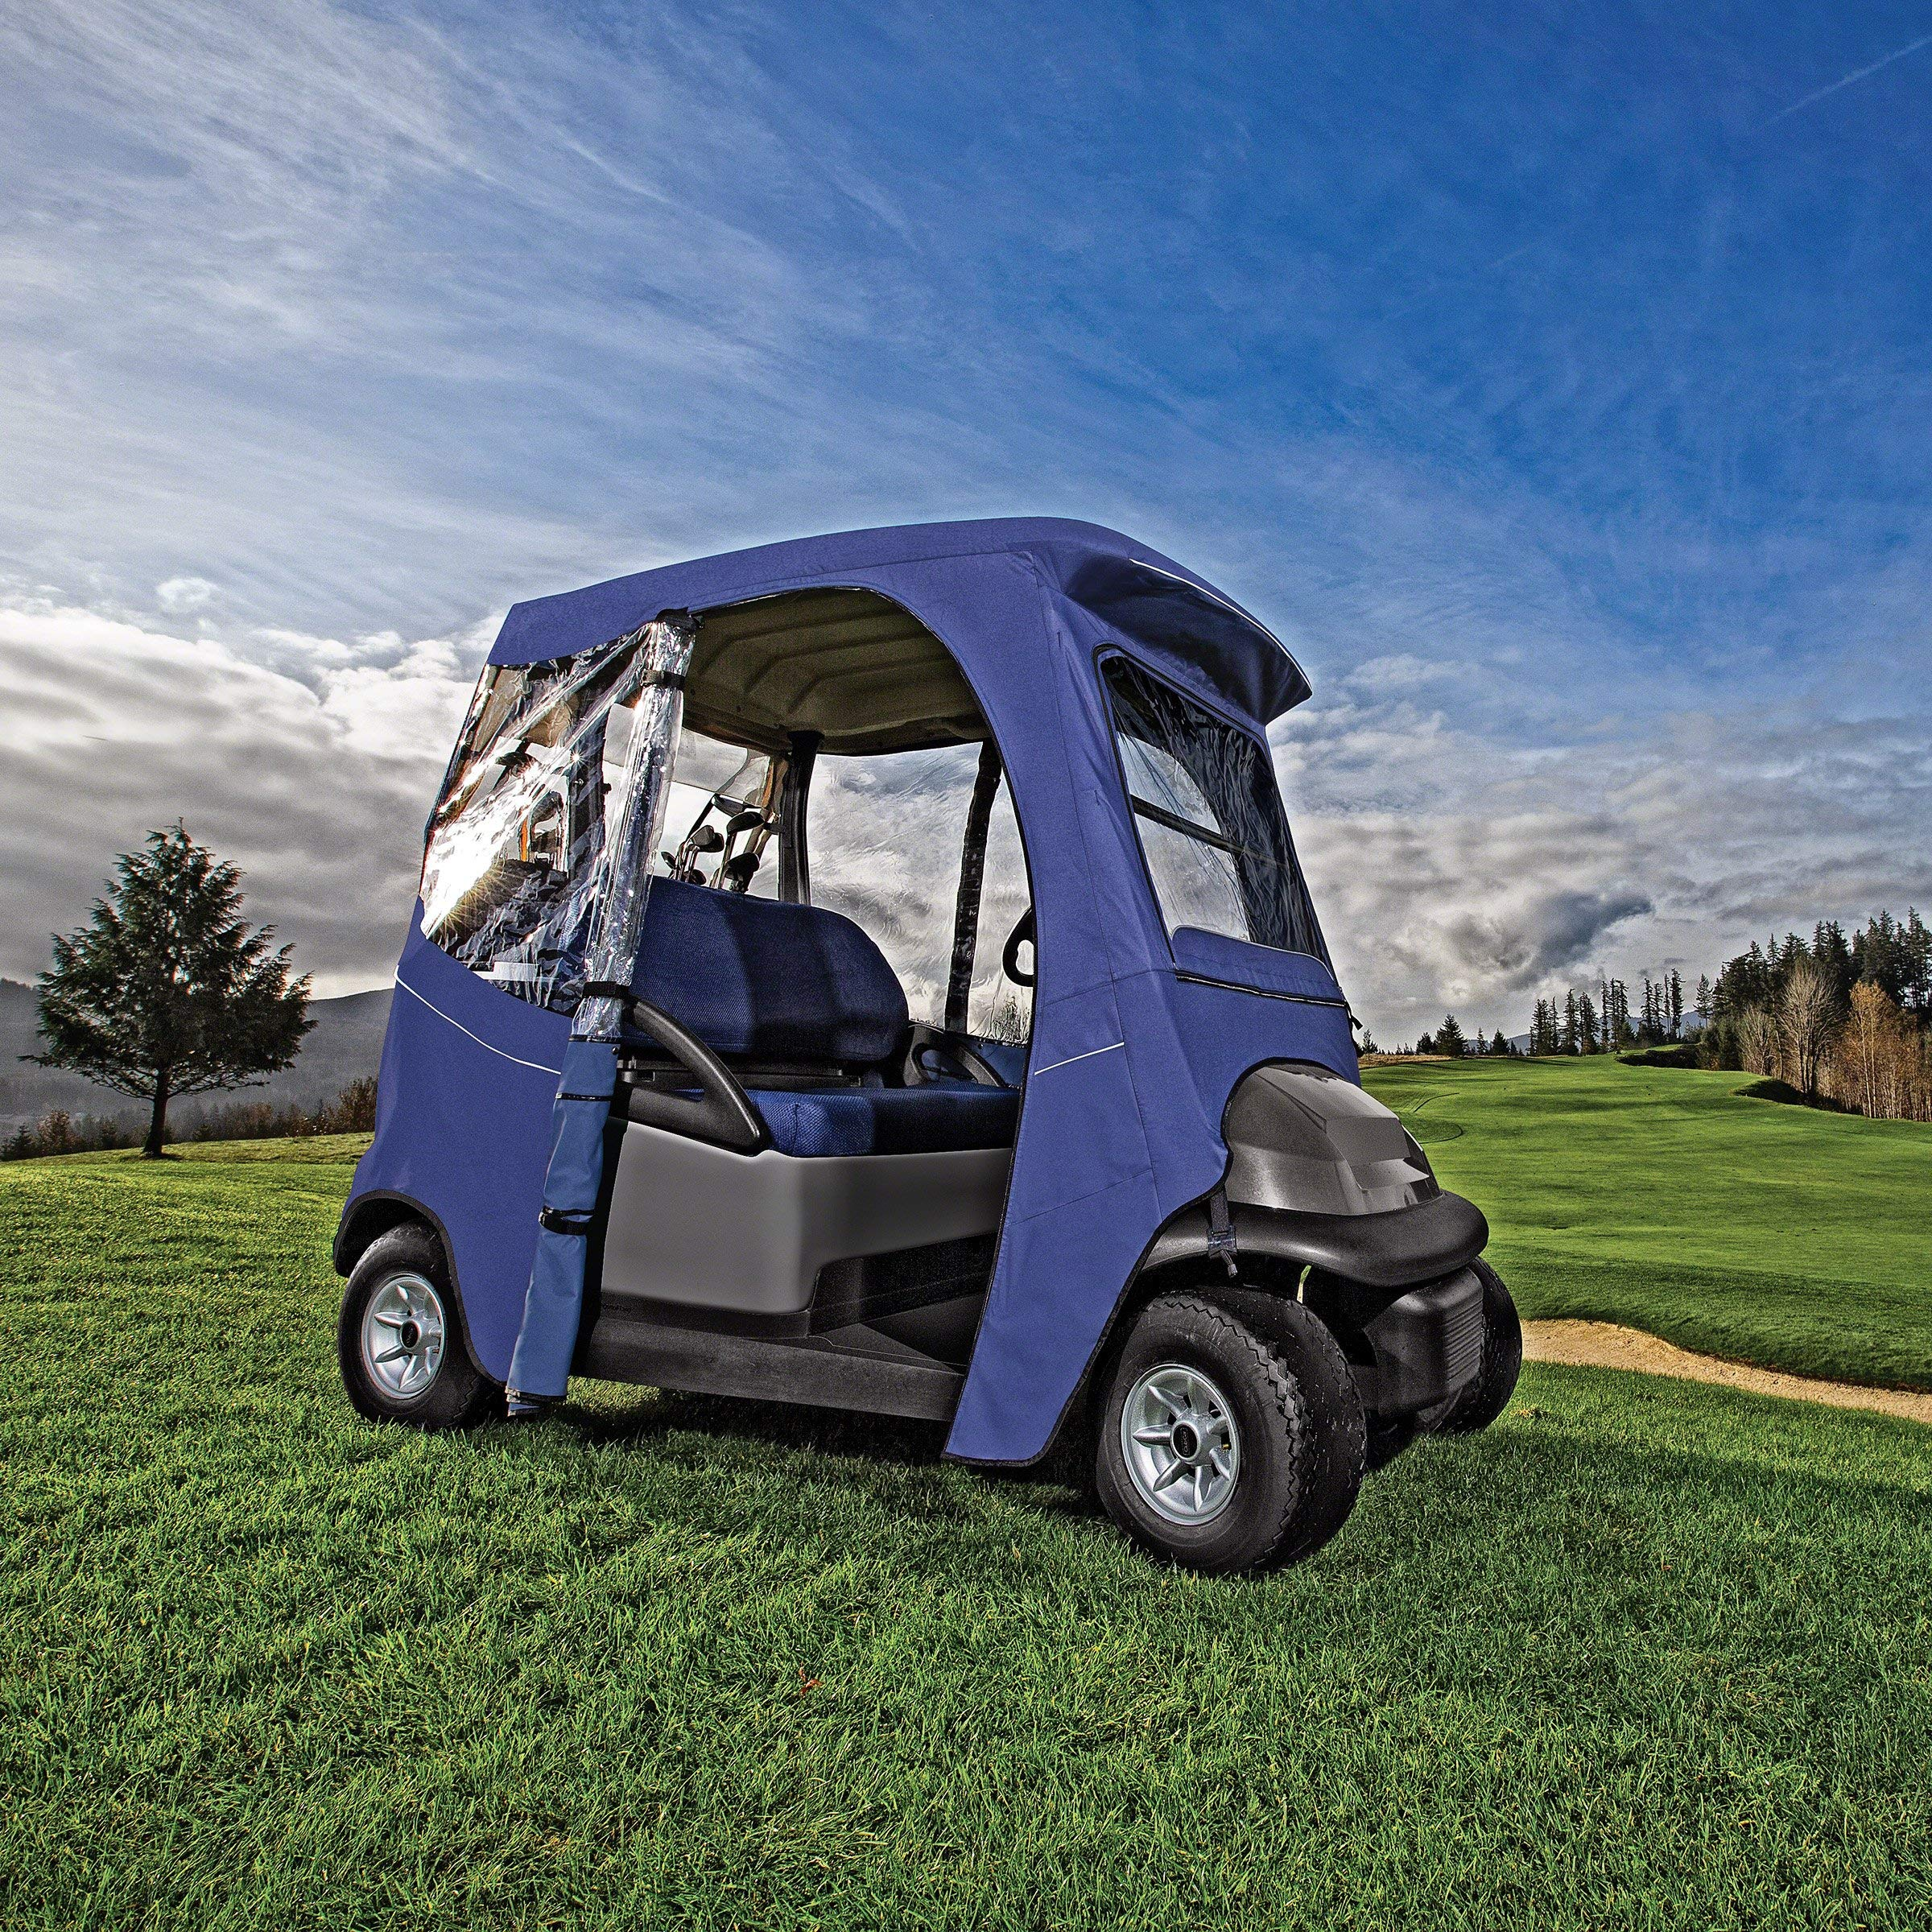 Classic Accessories Fairway Golf Cart Deluxe Enclosure, Black, Short Roof by Classic Accessories (Image #13)